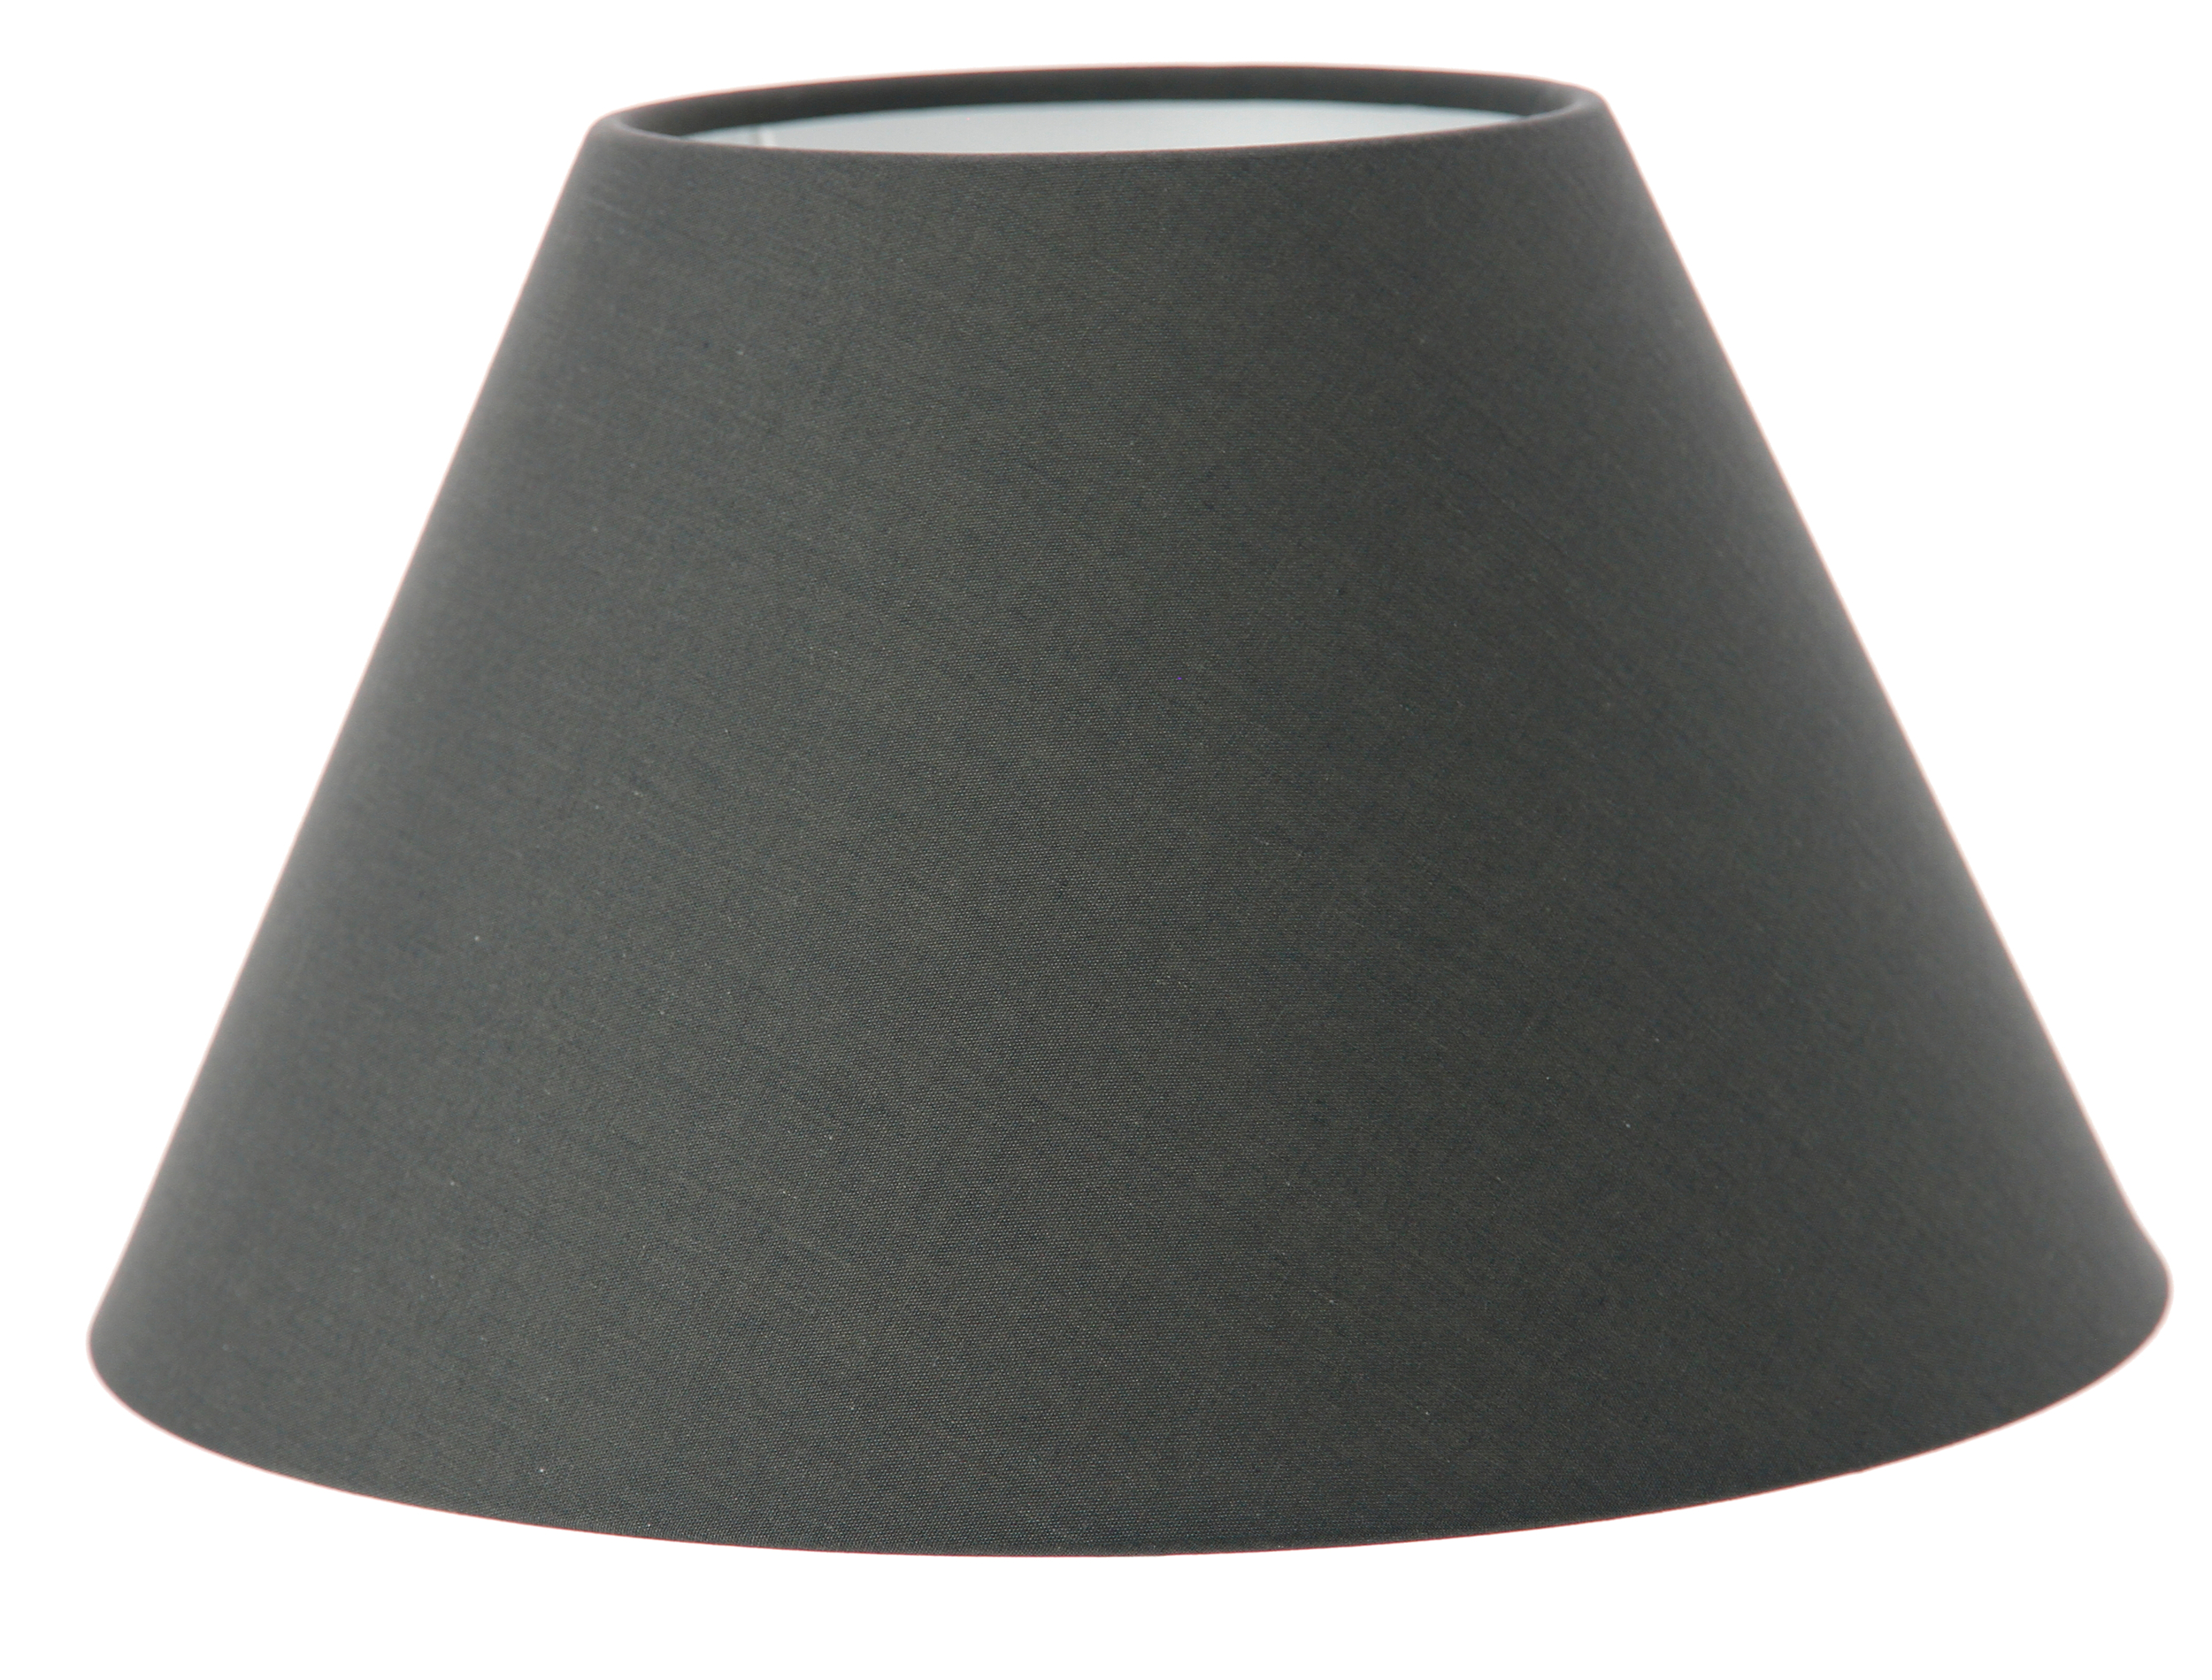 Abat-jour gris anthracite forme empire